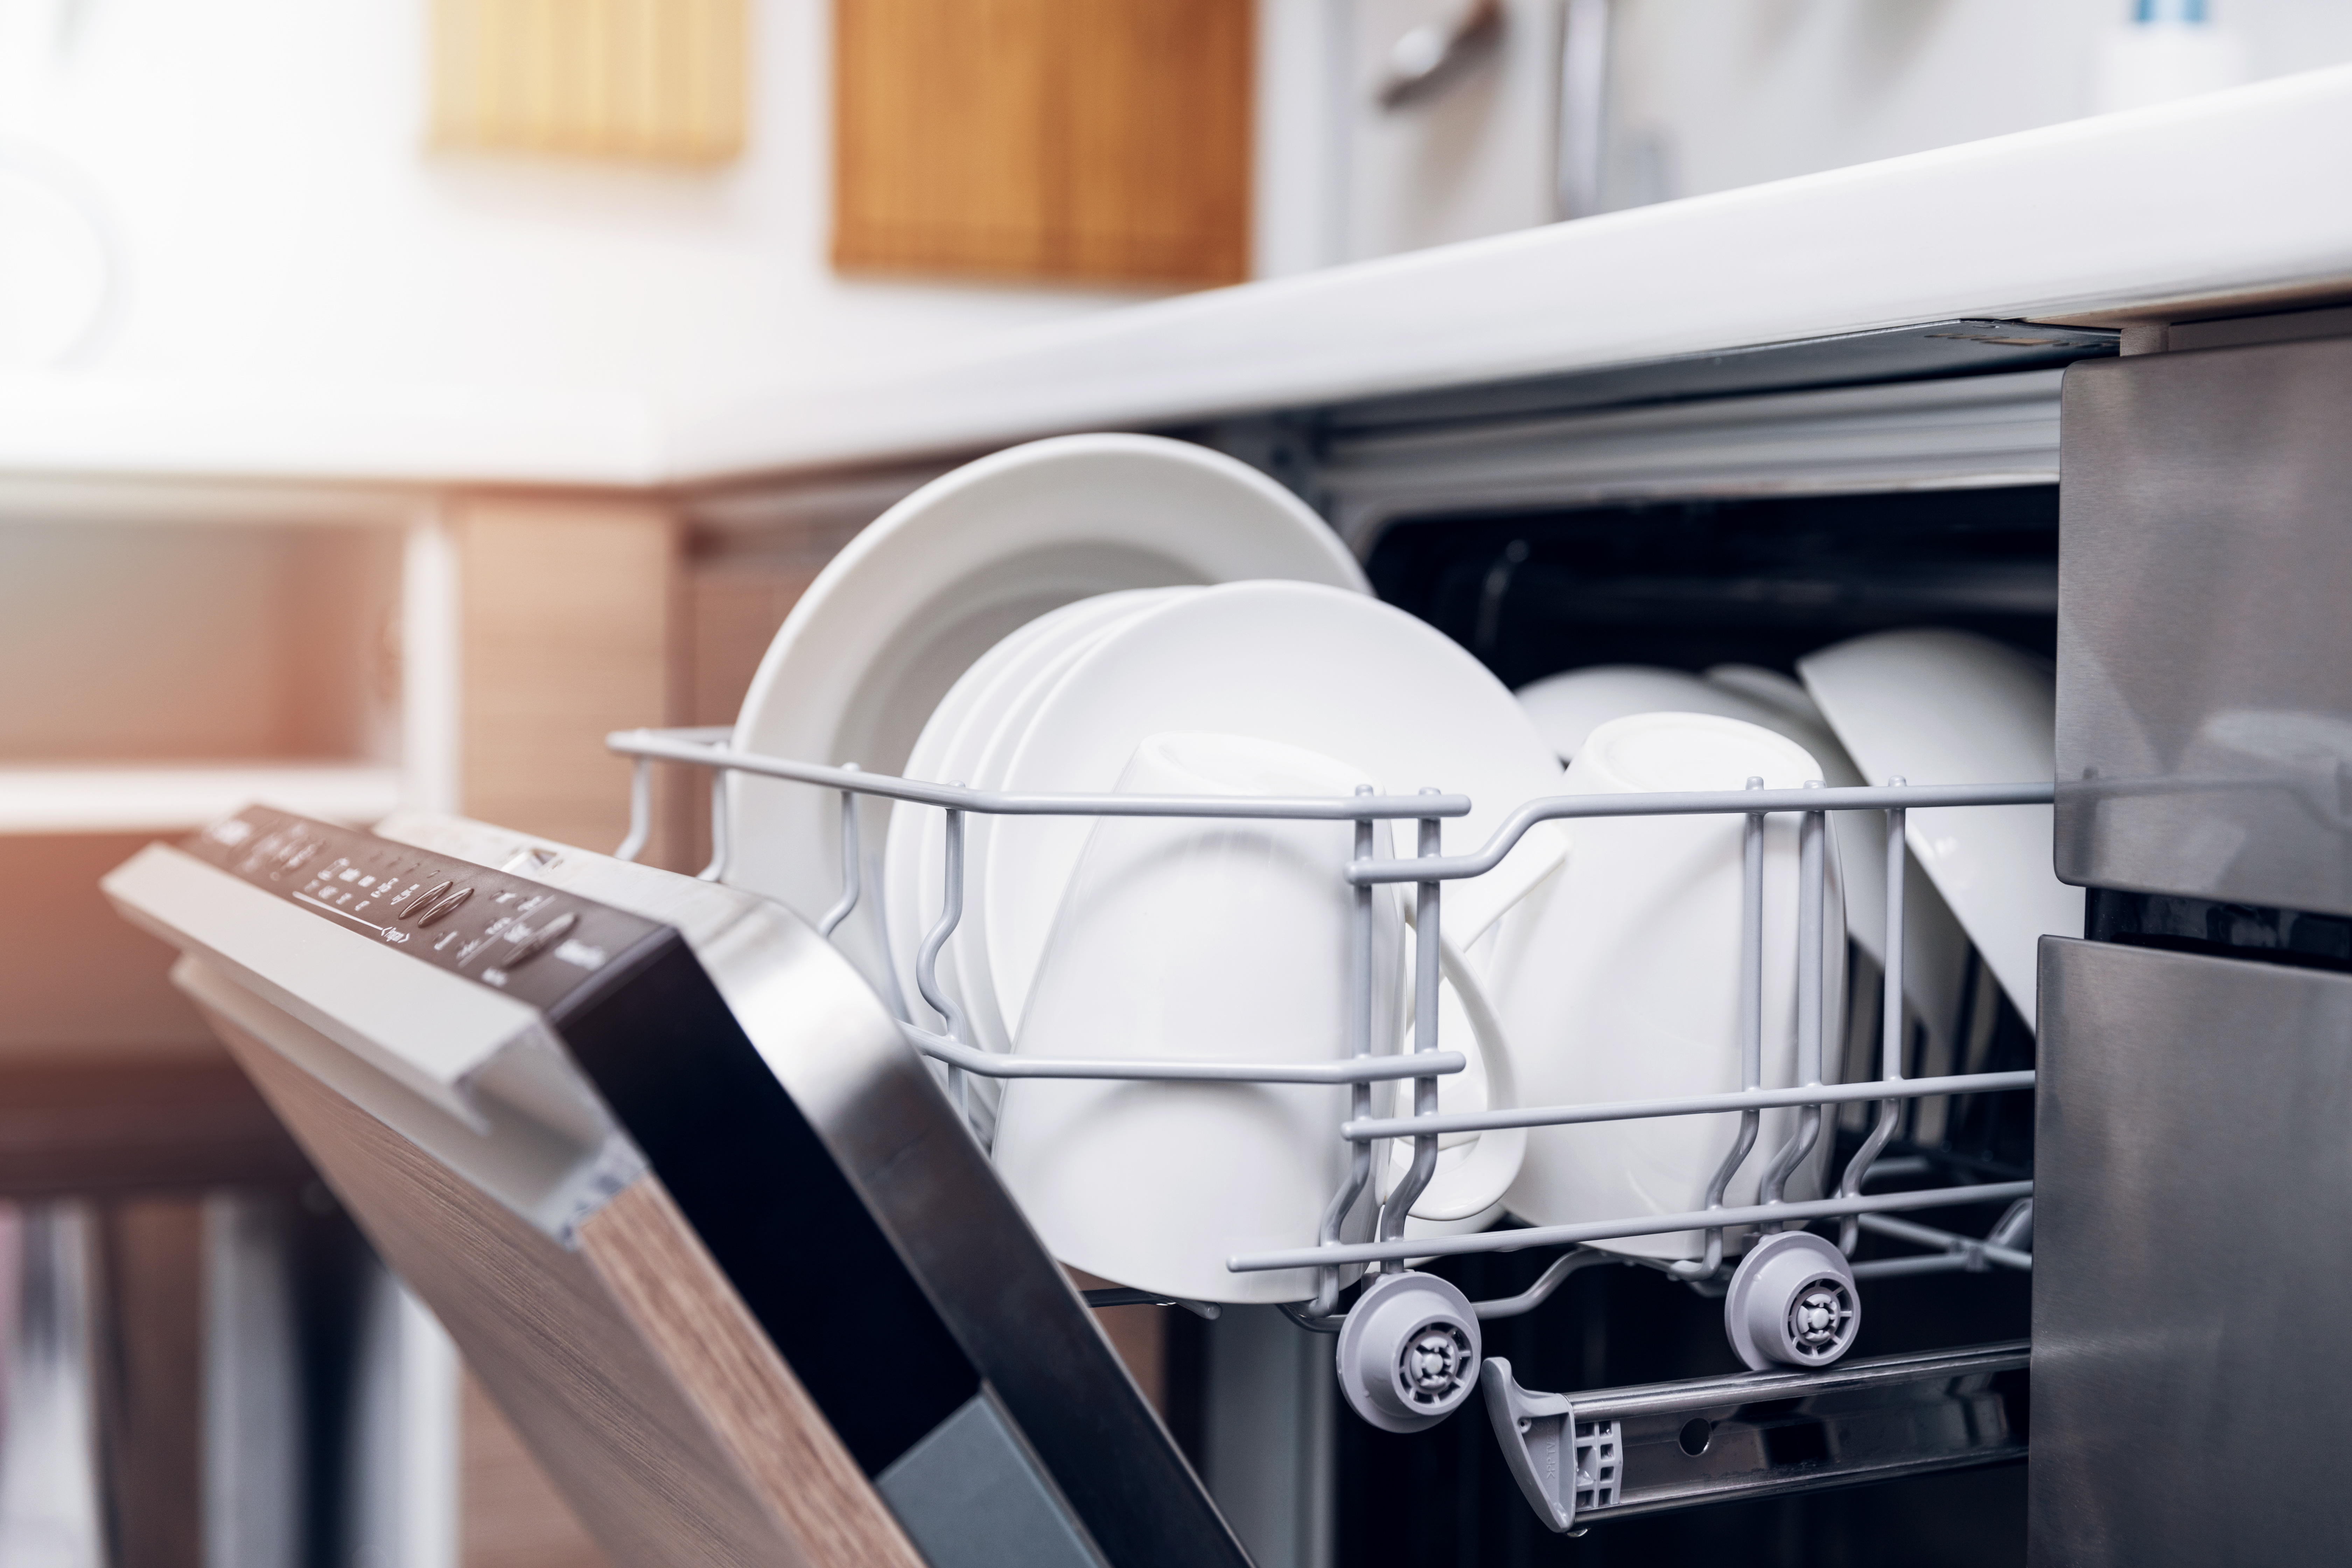 10 Things You Should Never Put In Your Dishwasher Daniel